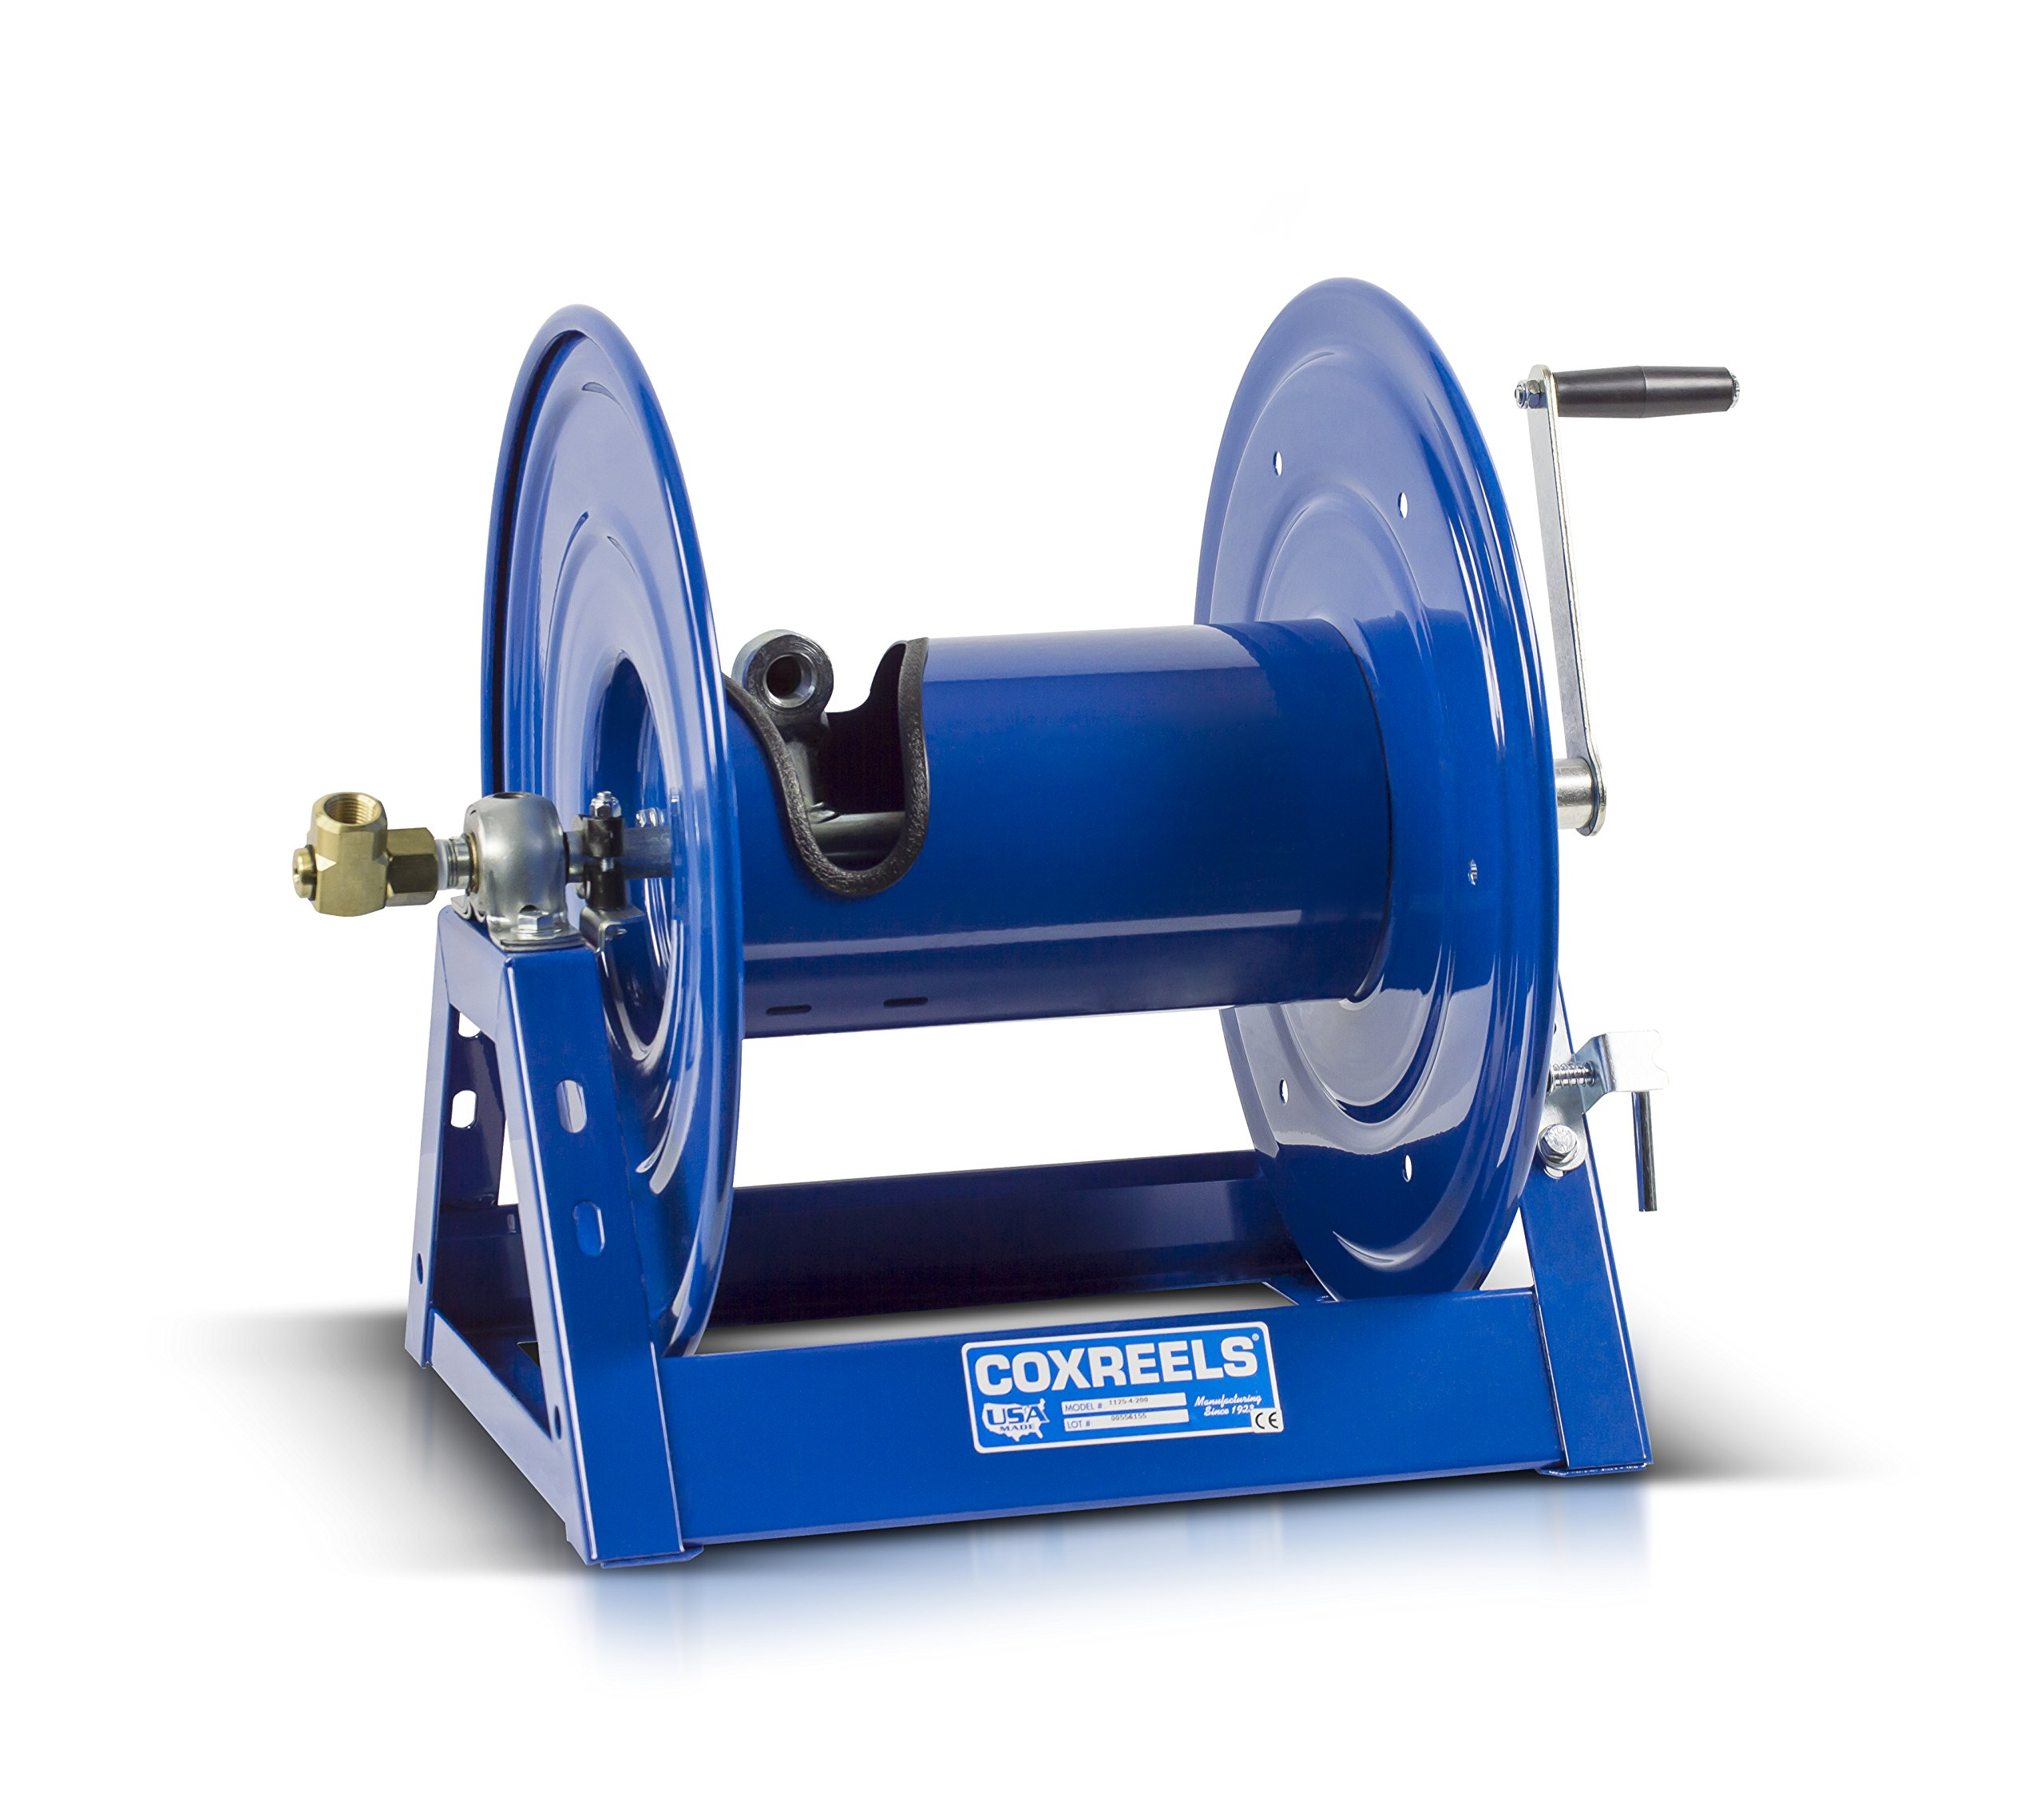 Coxreels 1125-5-100 Steel Hand Crank Hose Reel, 3/4'' Hose I.D., 100' Hose Capacity, 3,000 PSI, without Hose, Made in USA